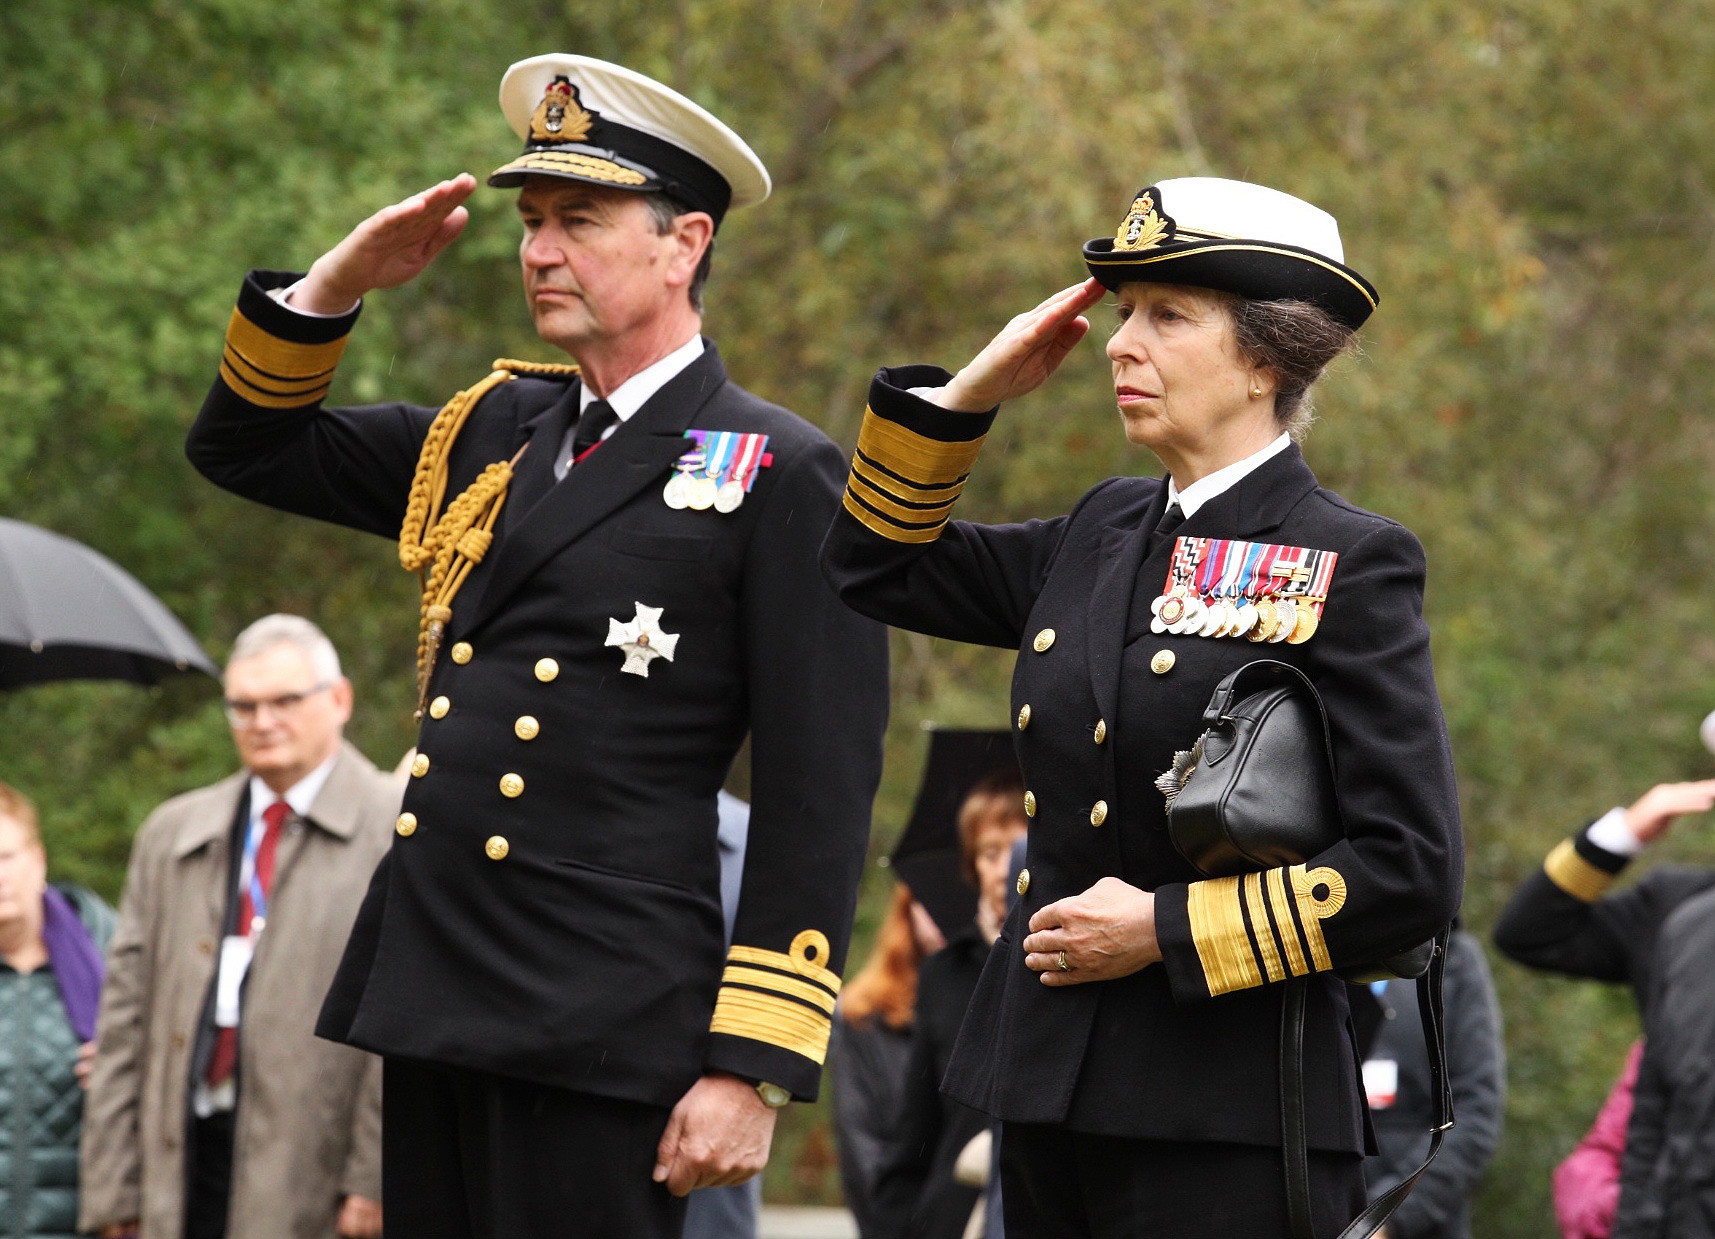 Anne (R), Princess Royal of Great Britain, and her husband, Vice Admiral Sir Timothy James Hamilton Laurence